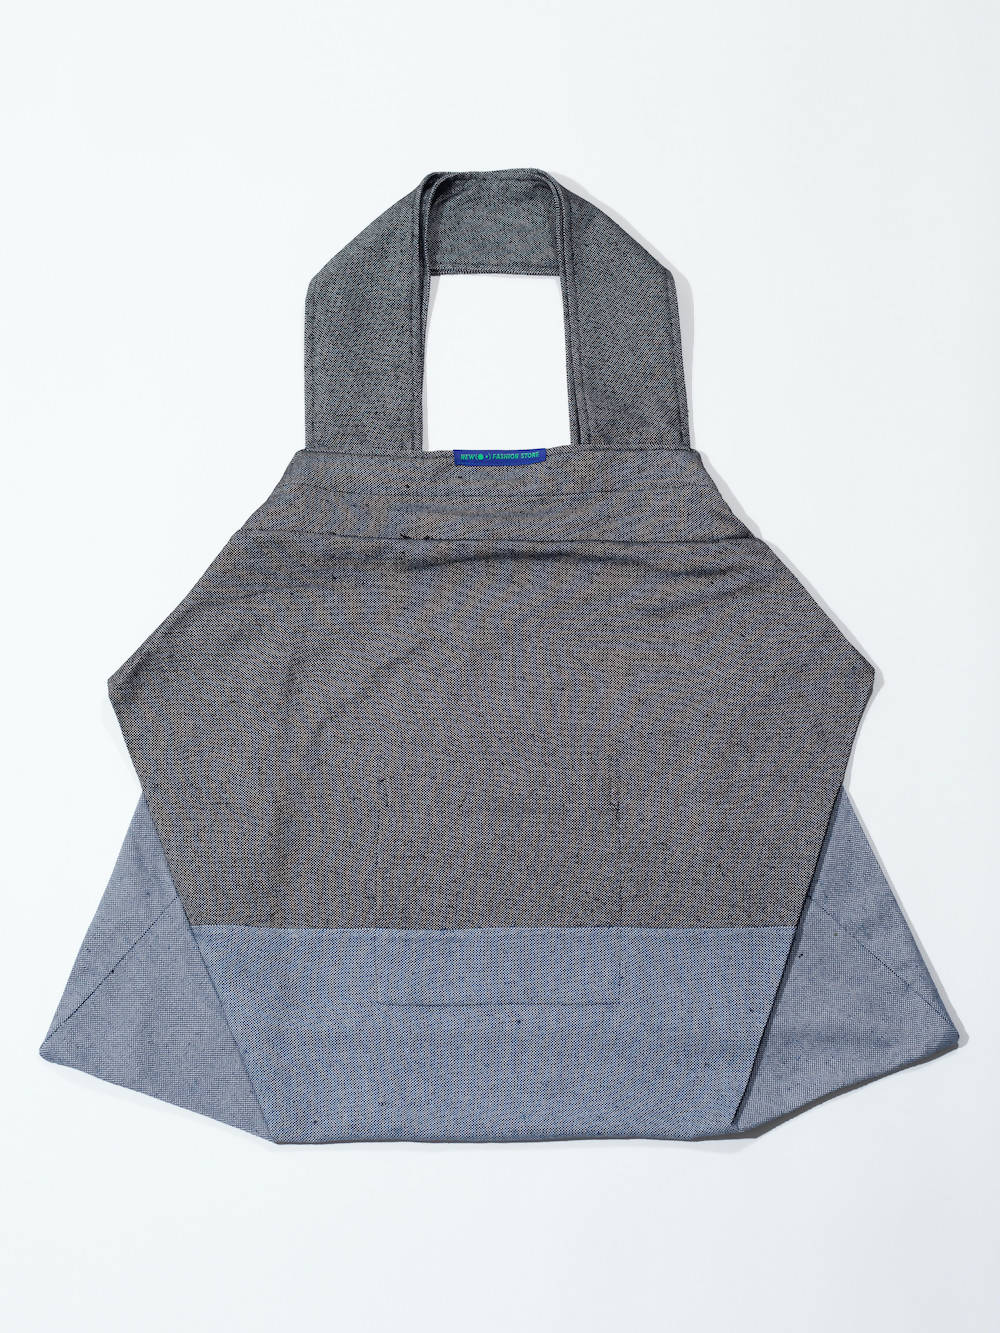 'From Scratch' Bag Denim Light